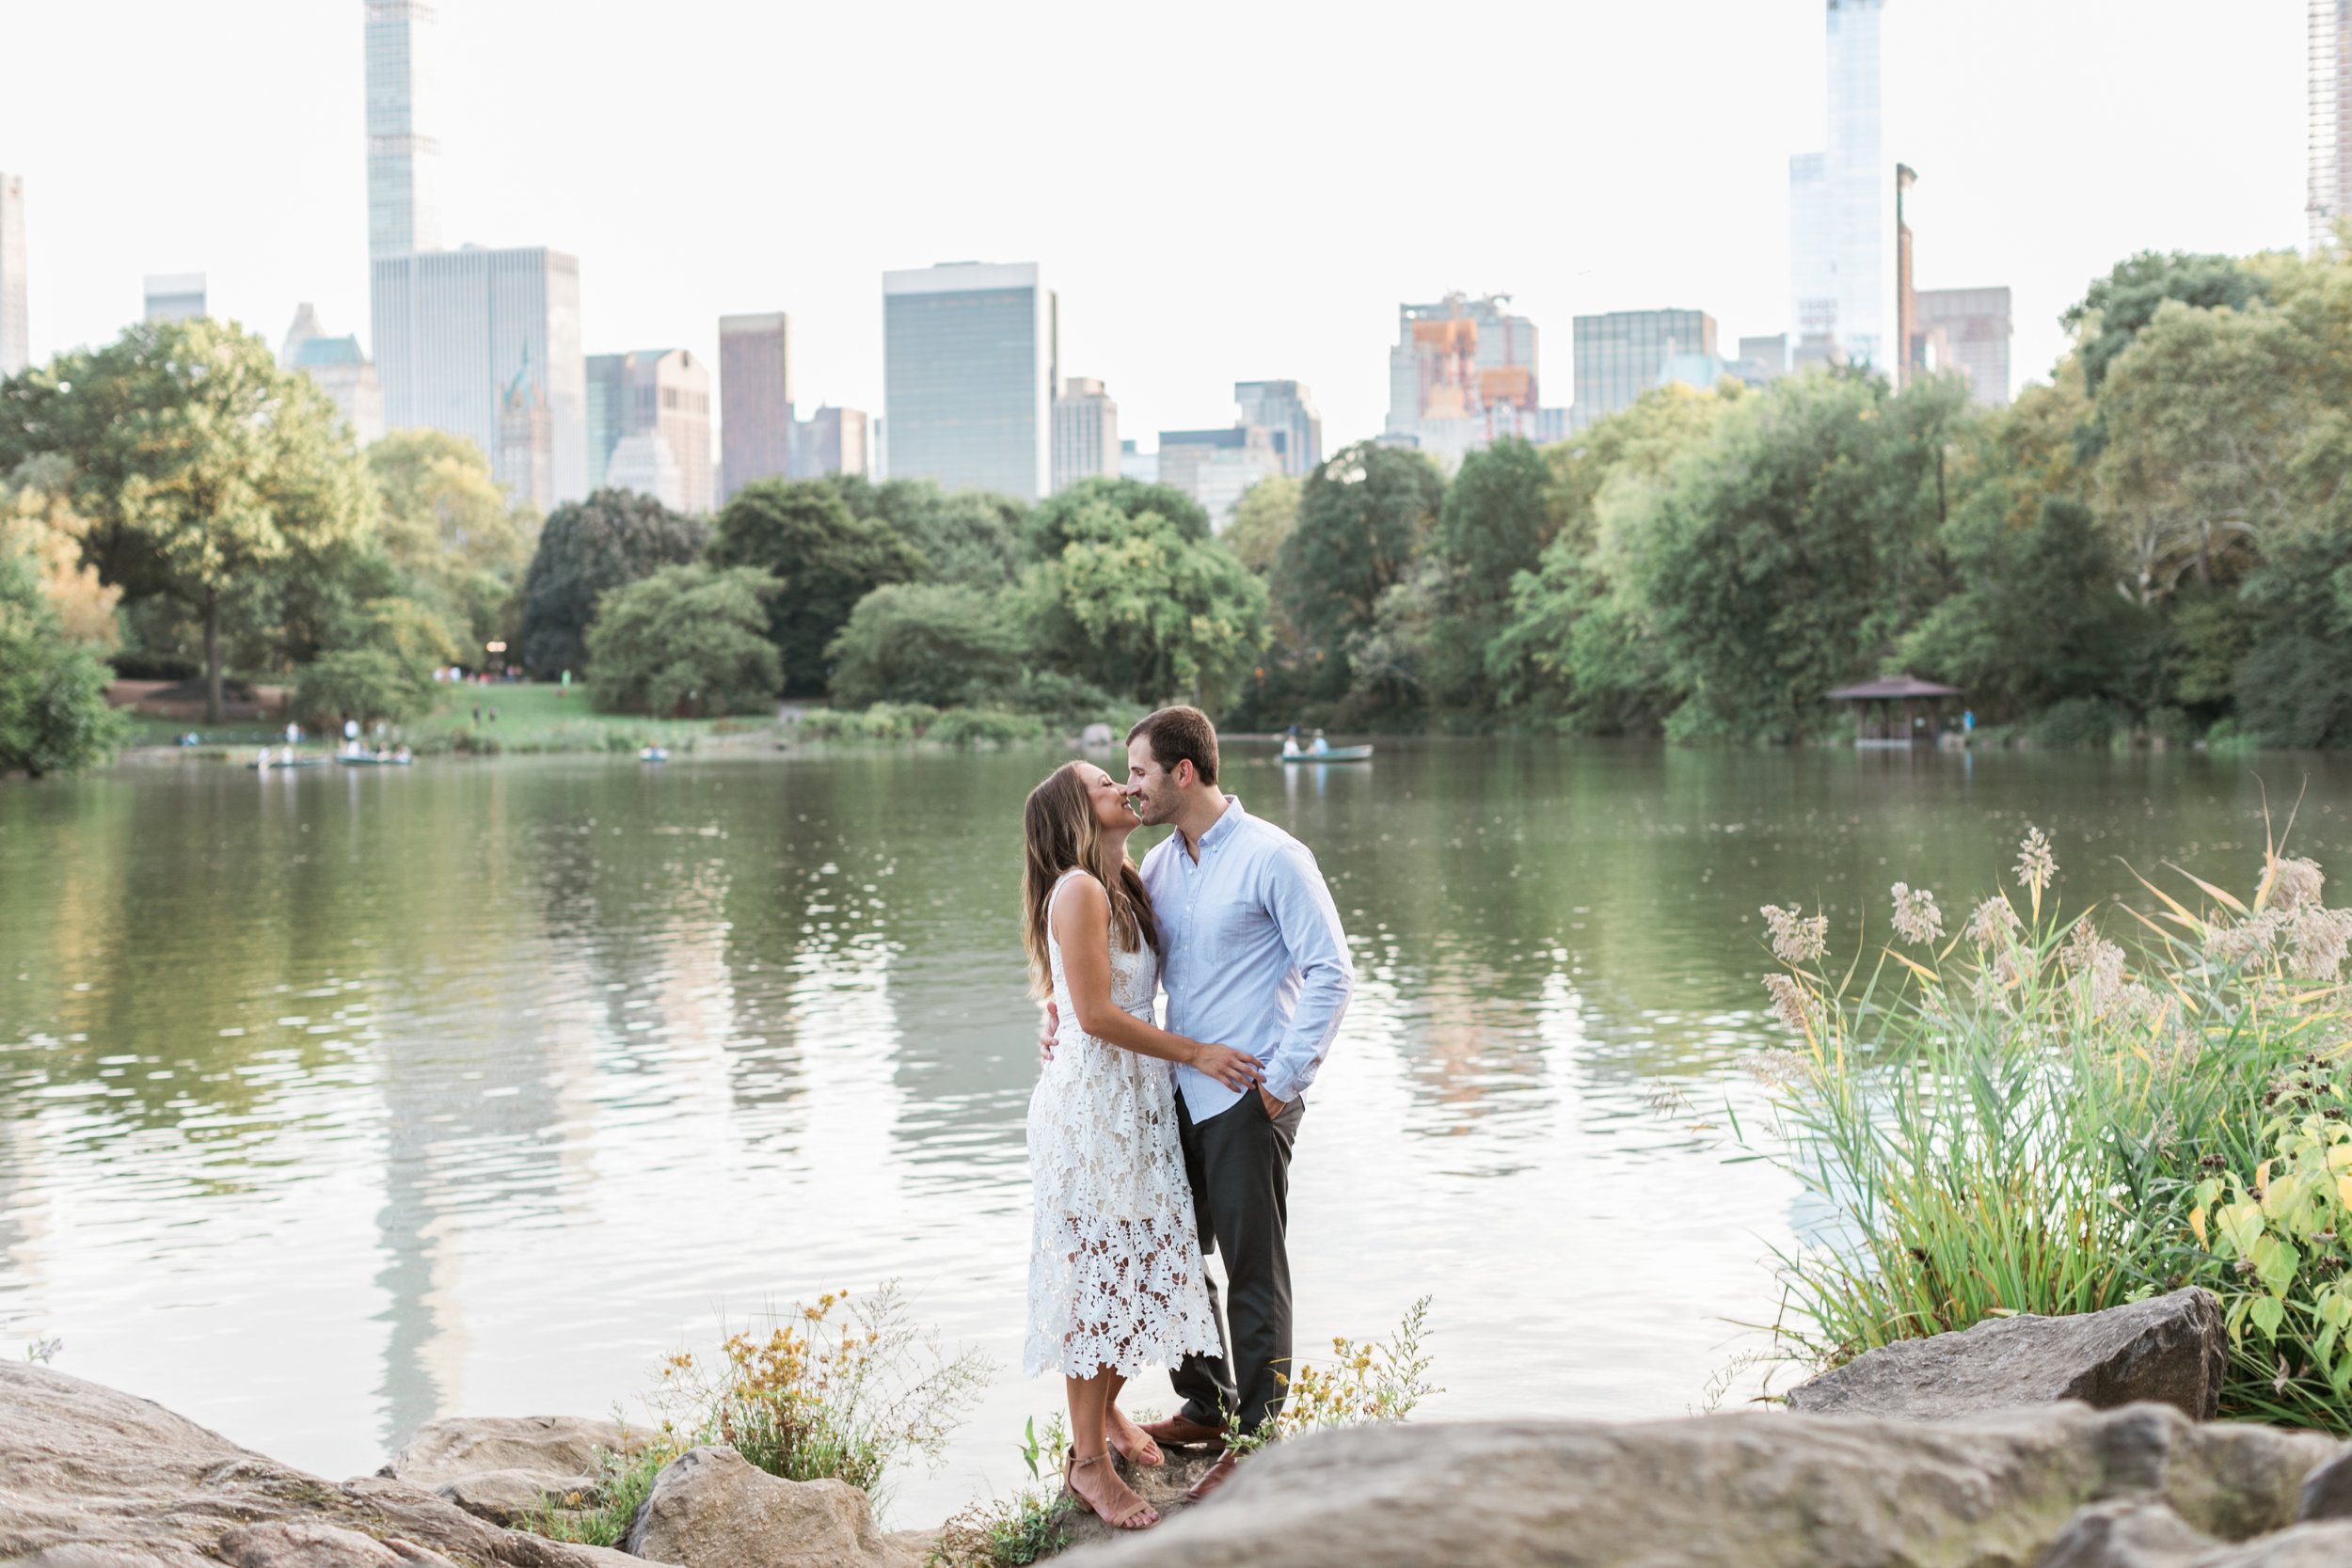 central-park-engagement-photographer10.jpg